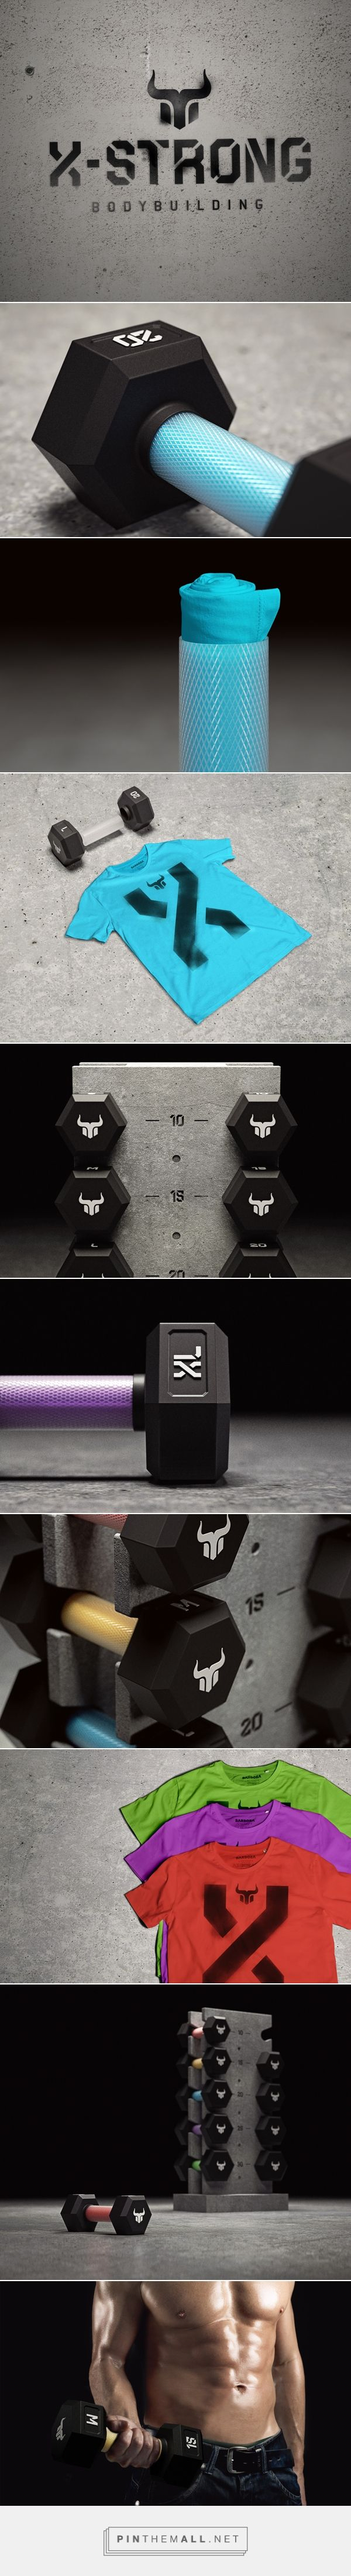 Dumbbells Concept on Behance curated by Packaging Diva PD. Cool concept idea for T-Shirts packaging.